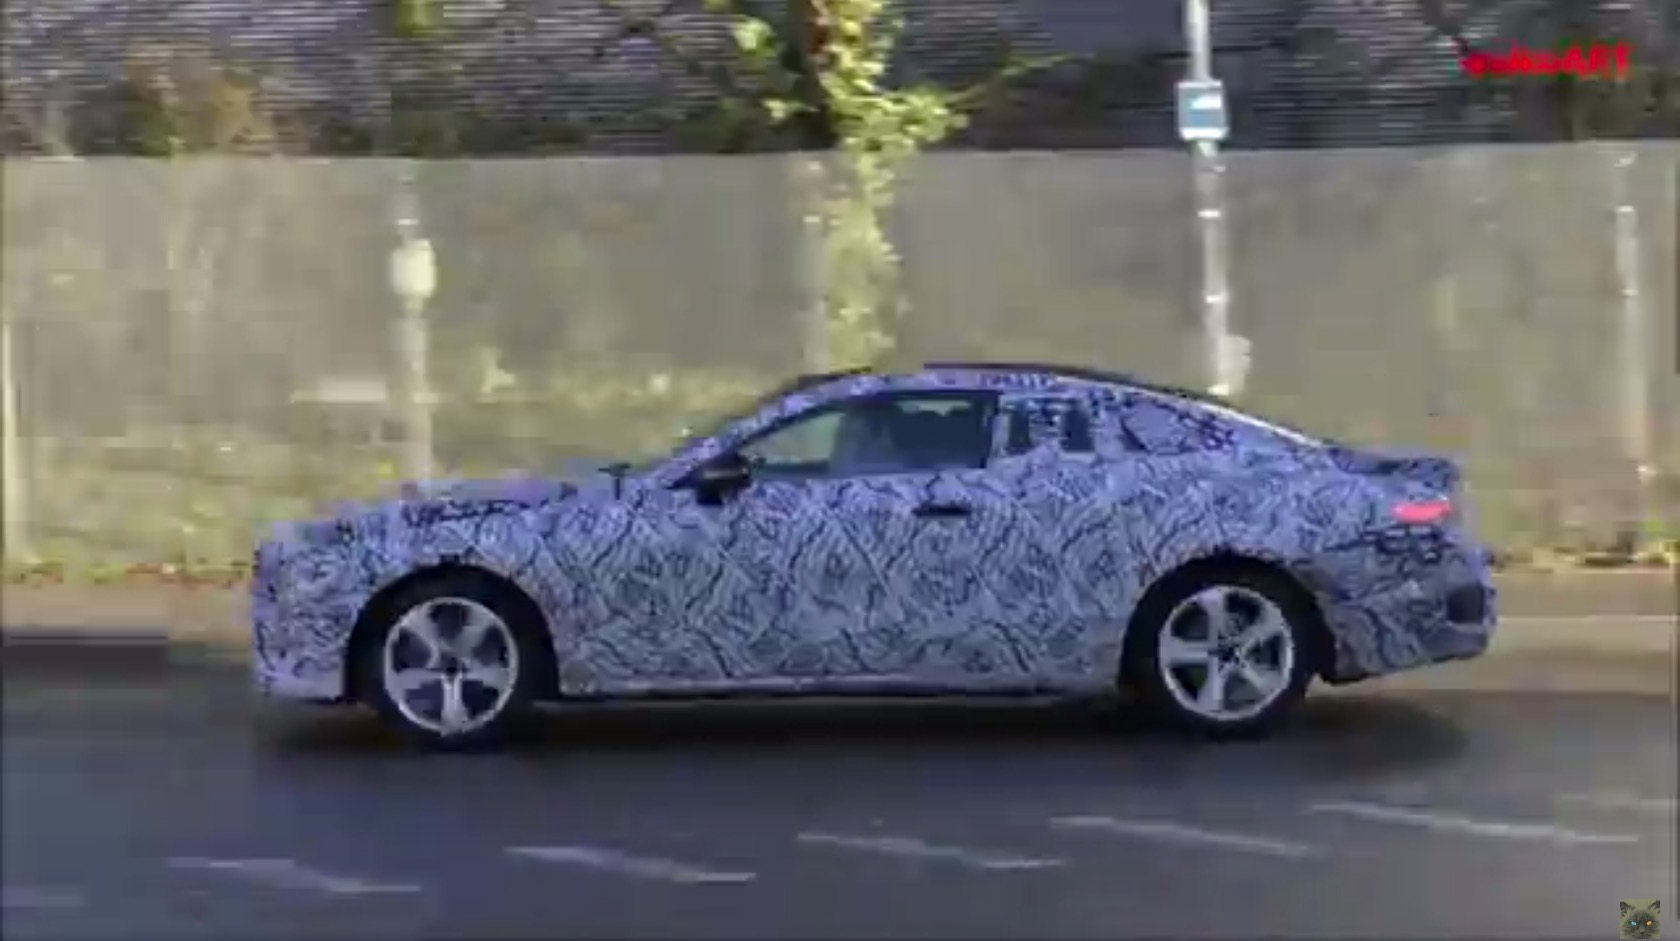 2018 mercedes benz e class coupe shows its sexy silhouette for Best looking mercedes benz models